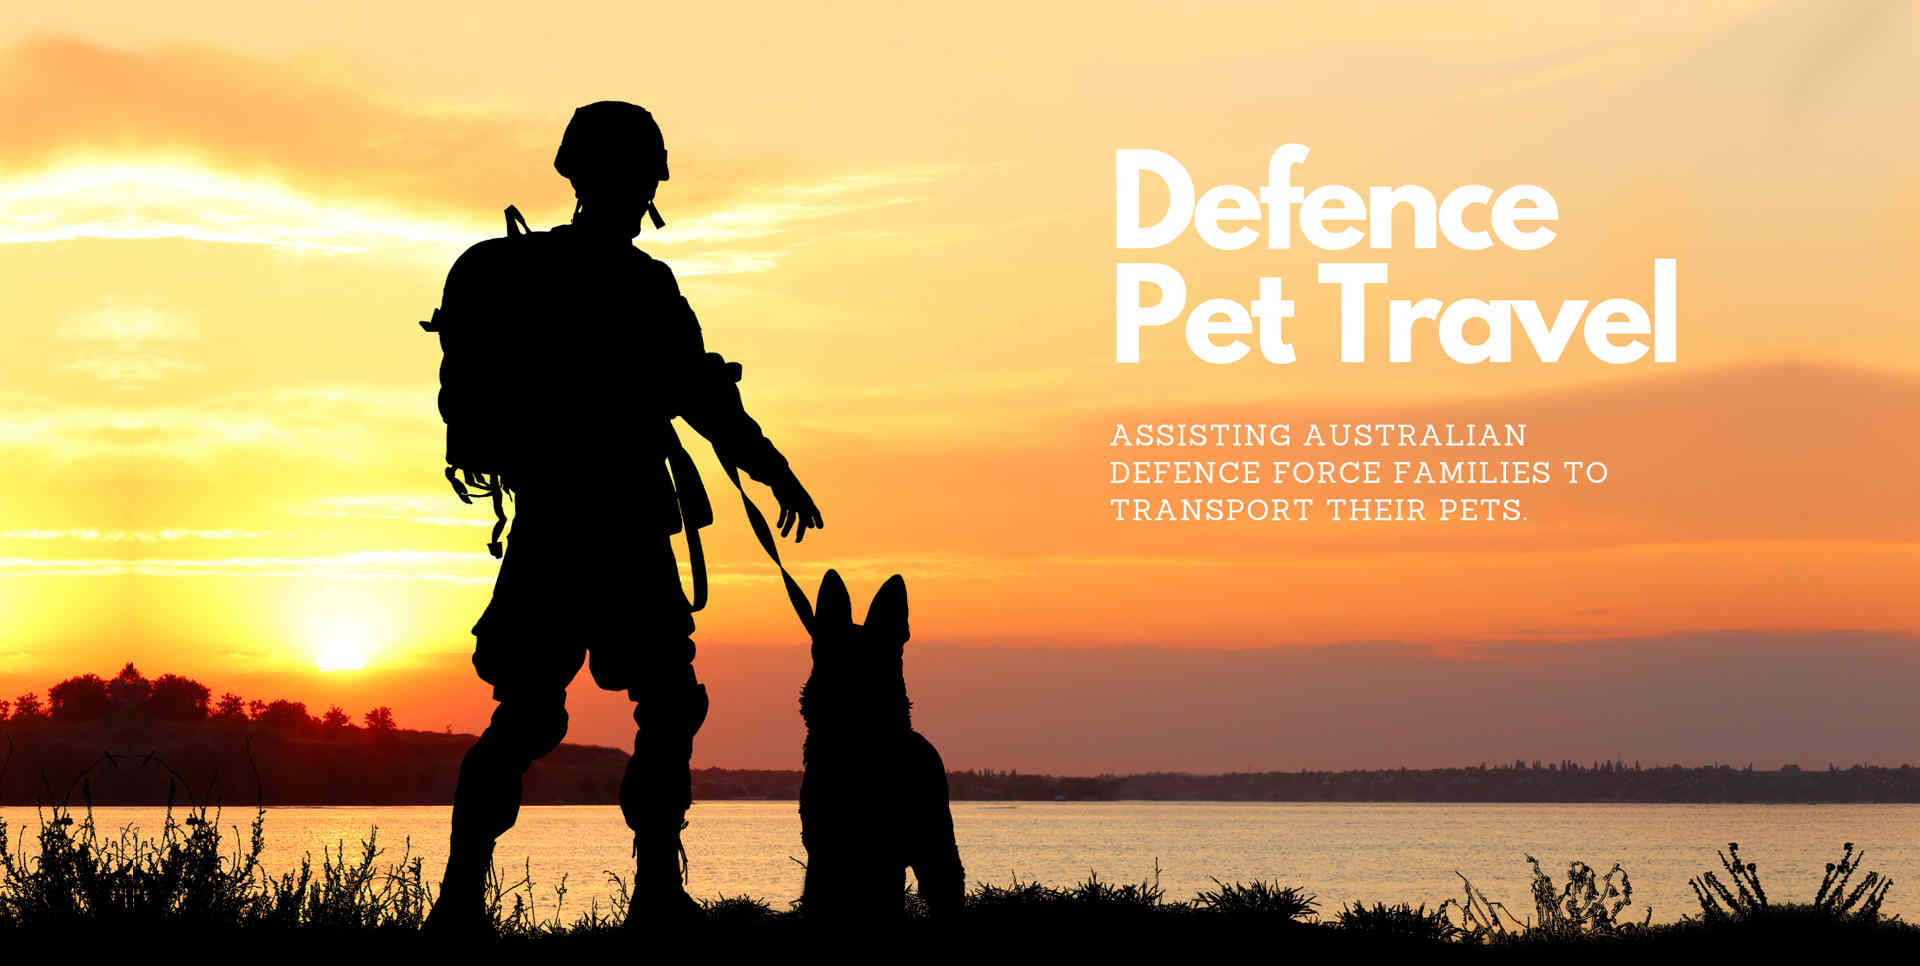 Defence pet travel